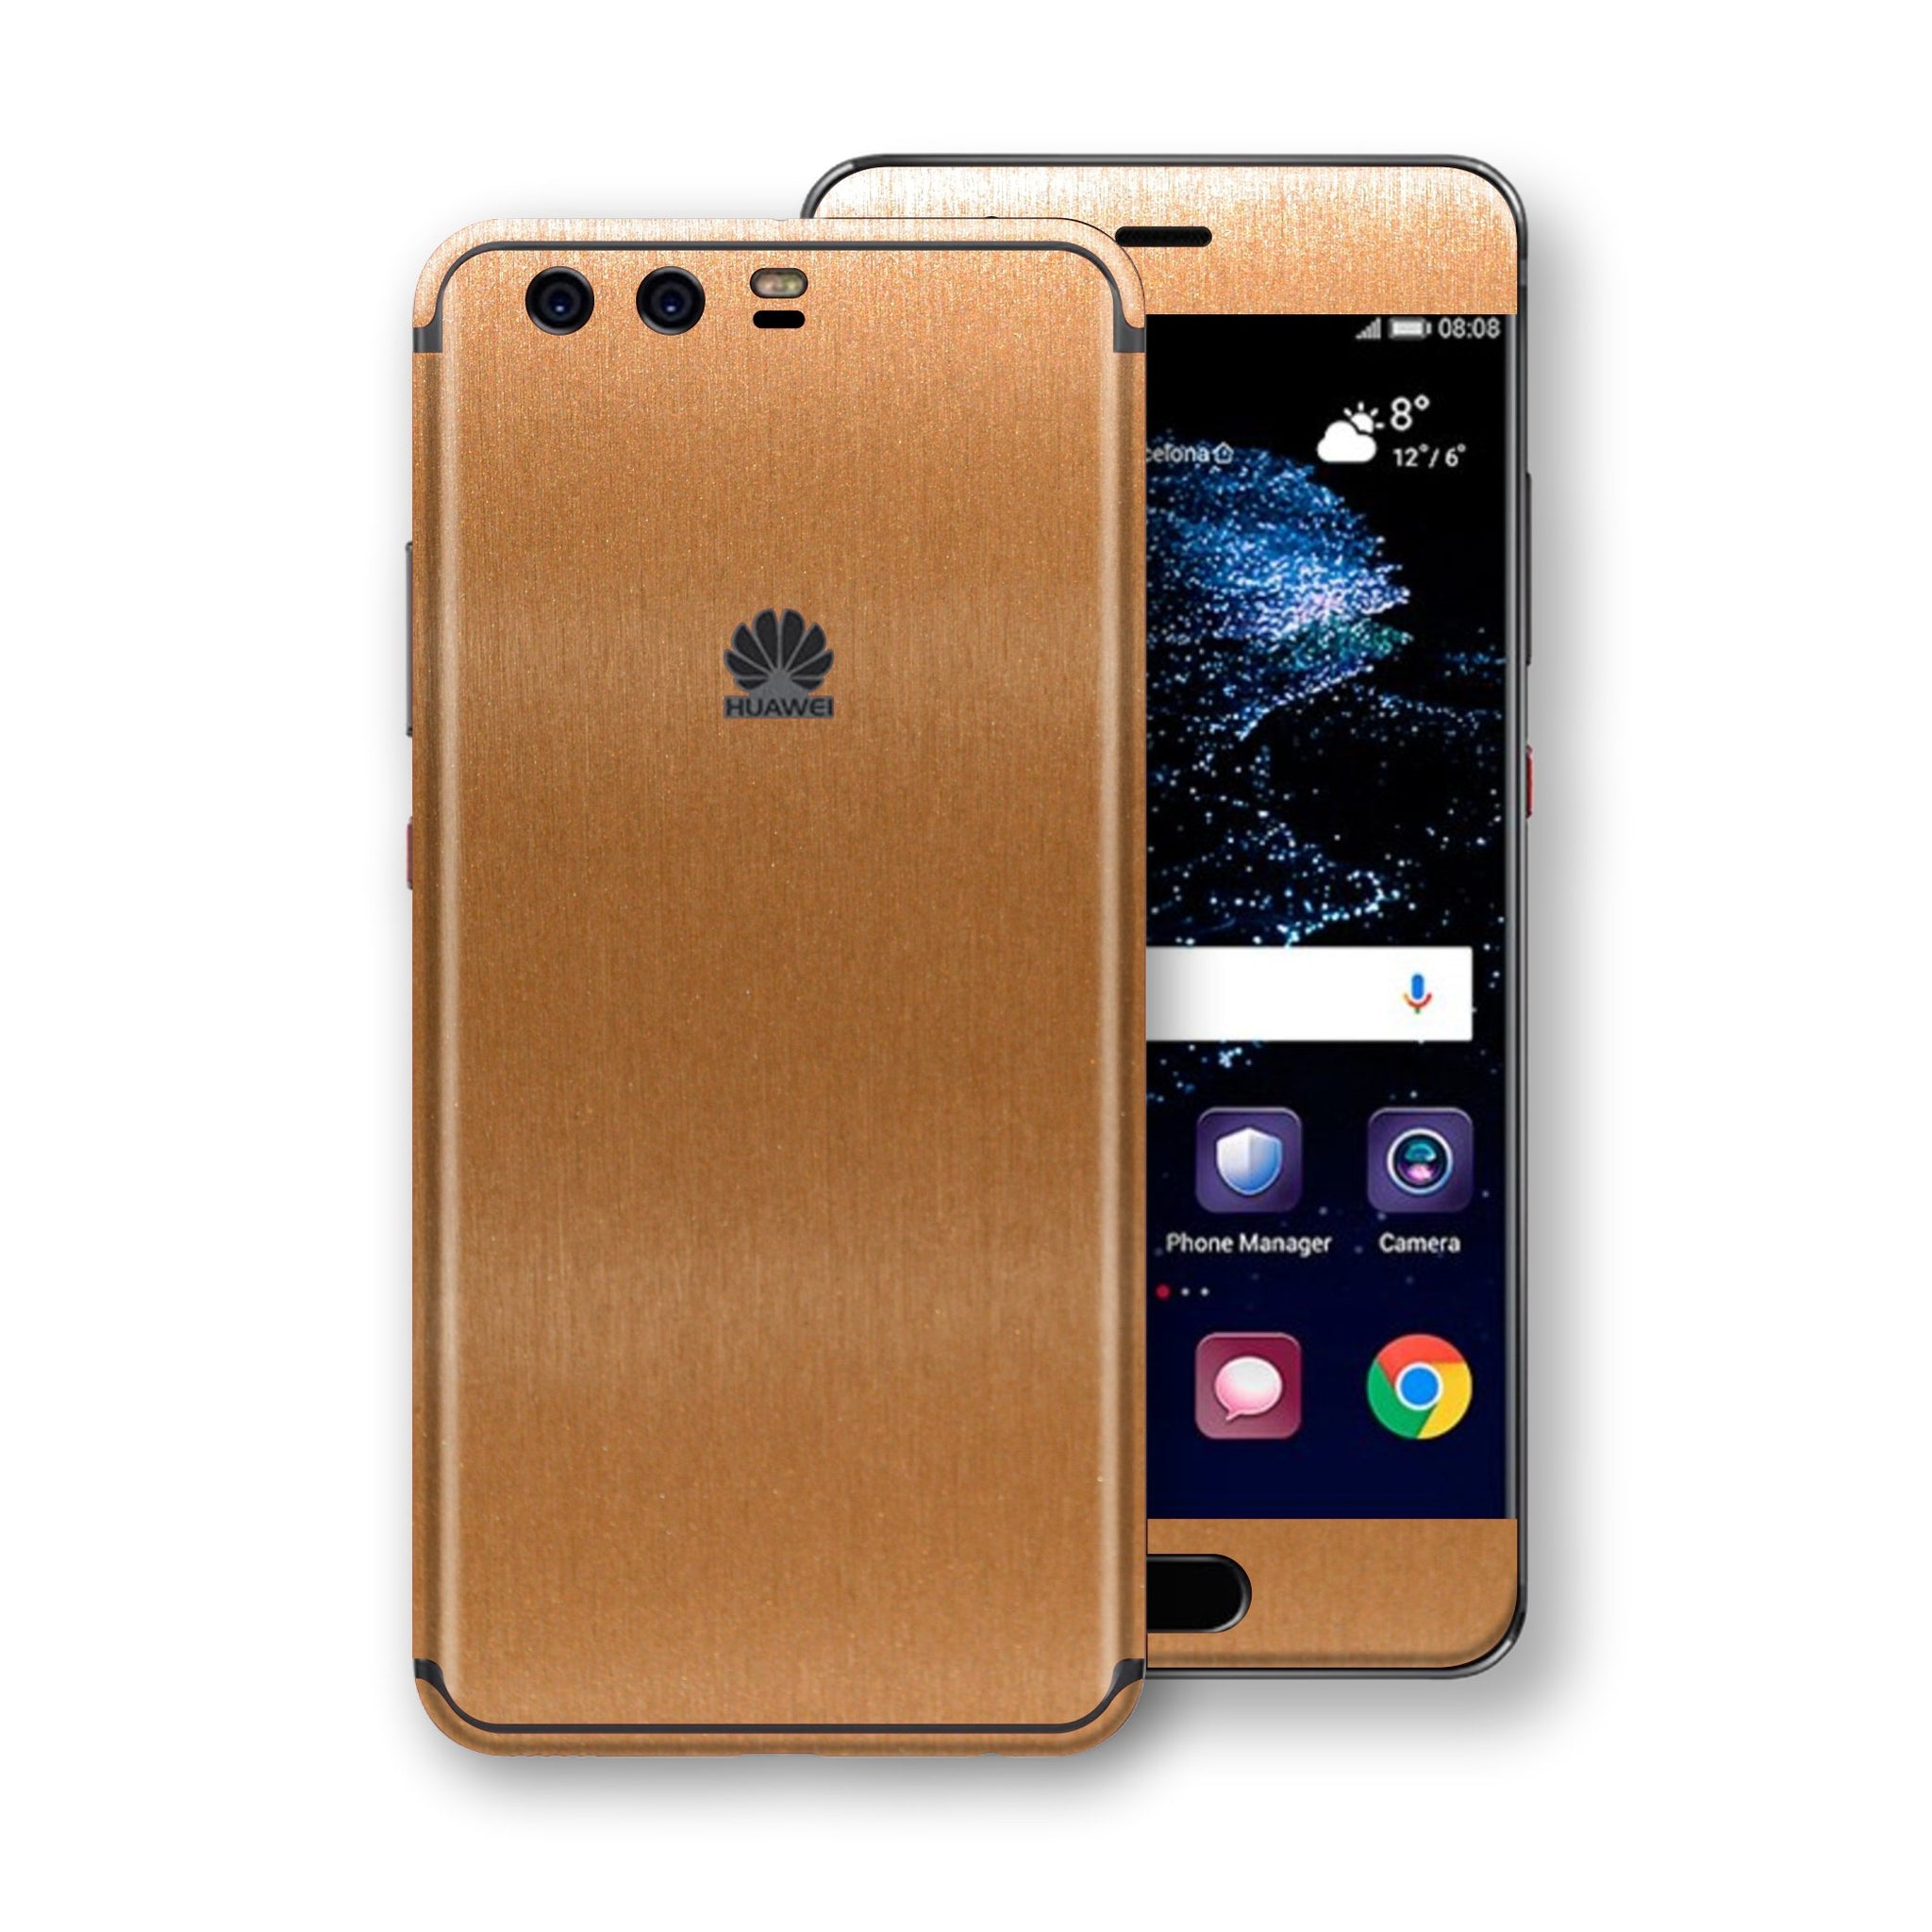 Huawei P10+ PLUS Brushed Copper Metallic Metal Skin, Decal, Wrap, Protector, Cover by EasySkinz | EasySkinz.com